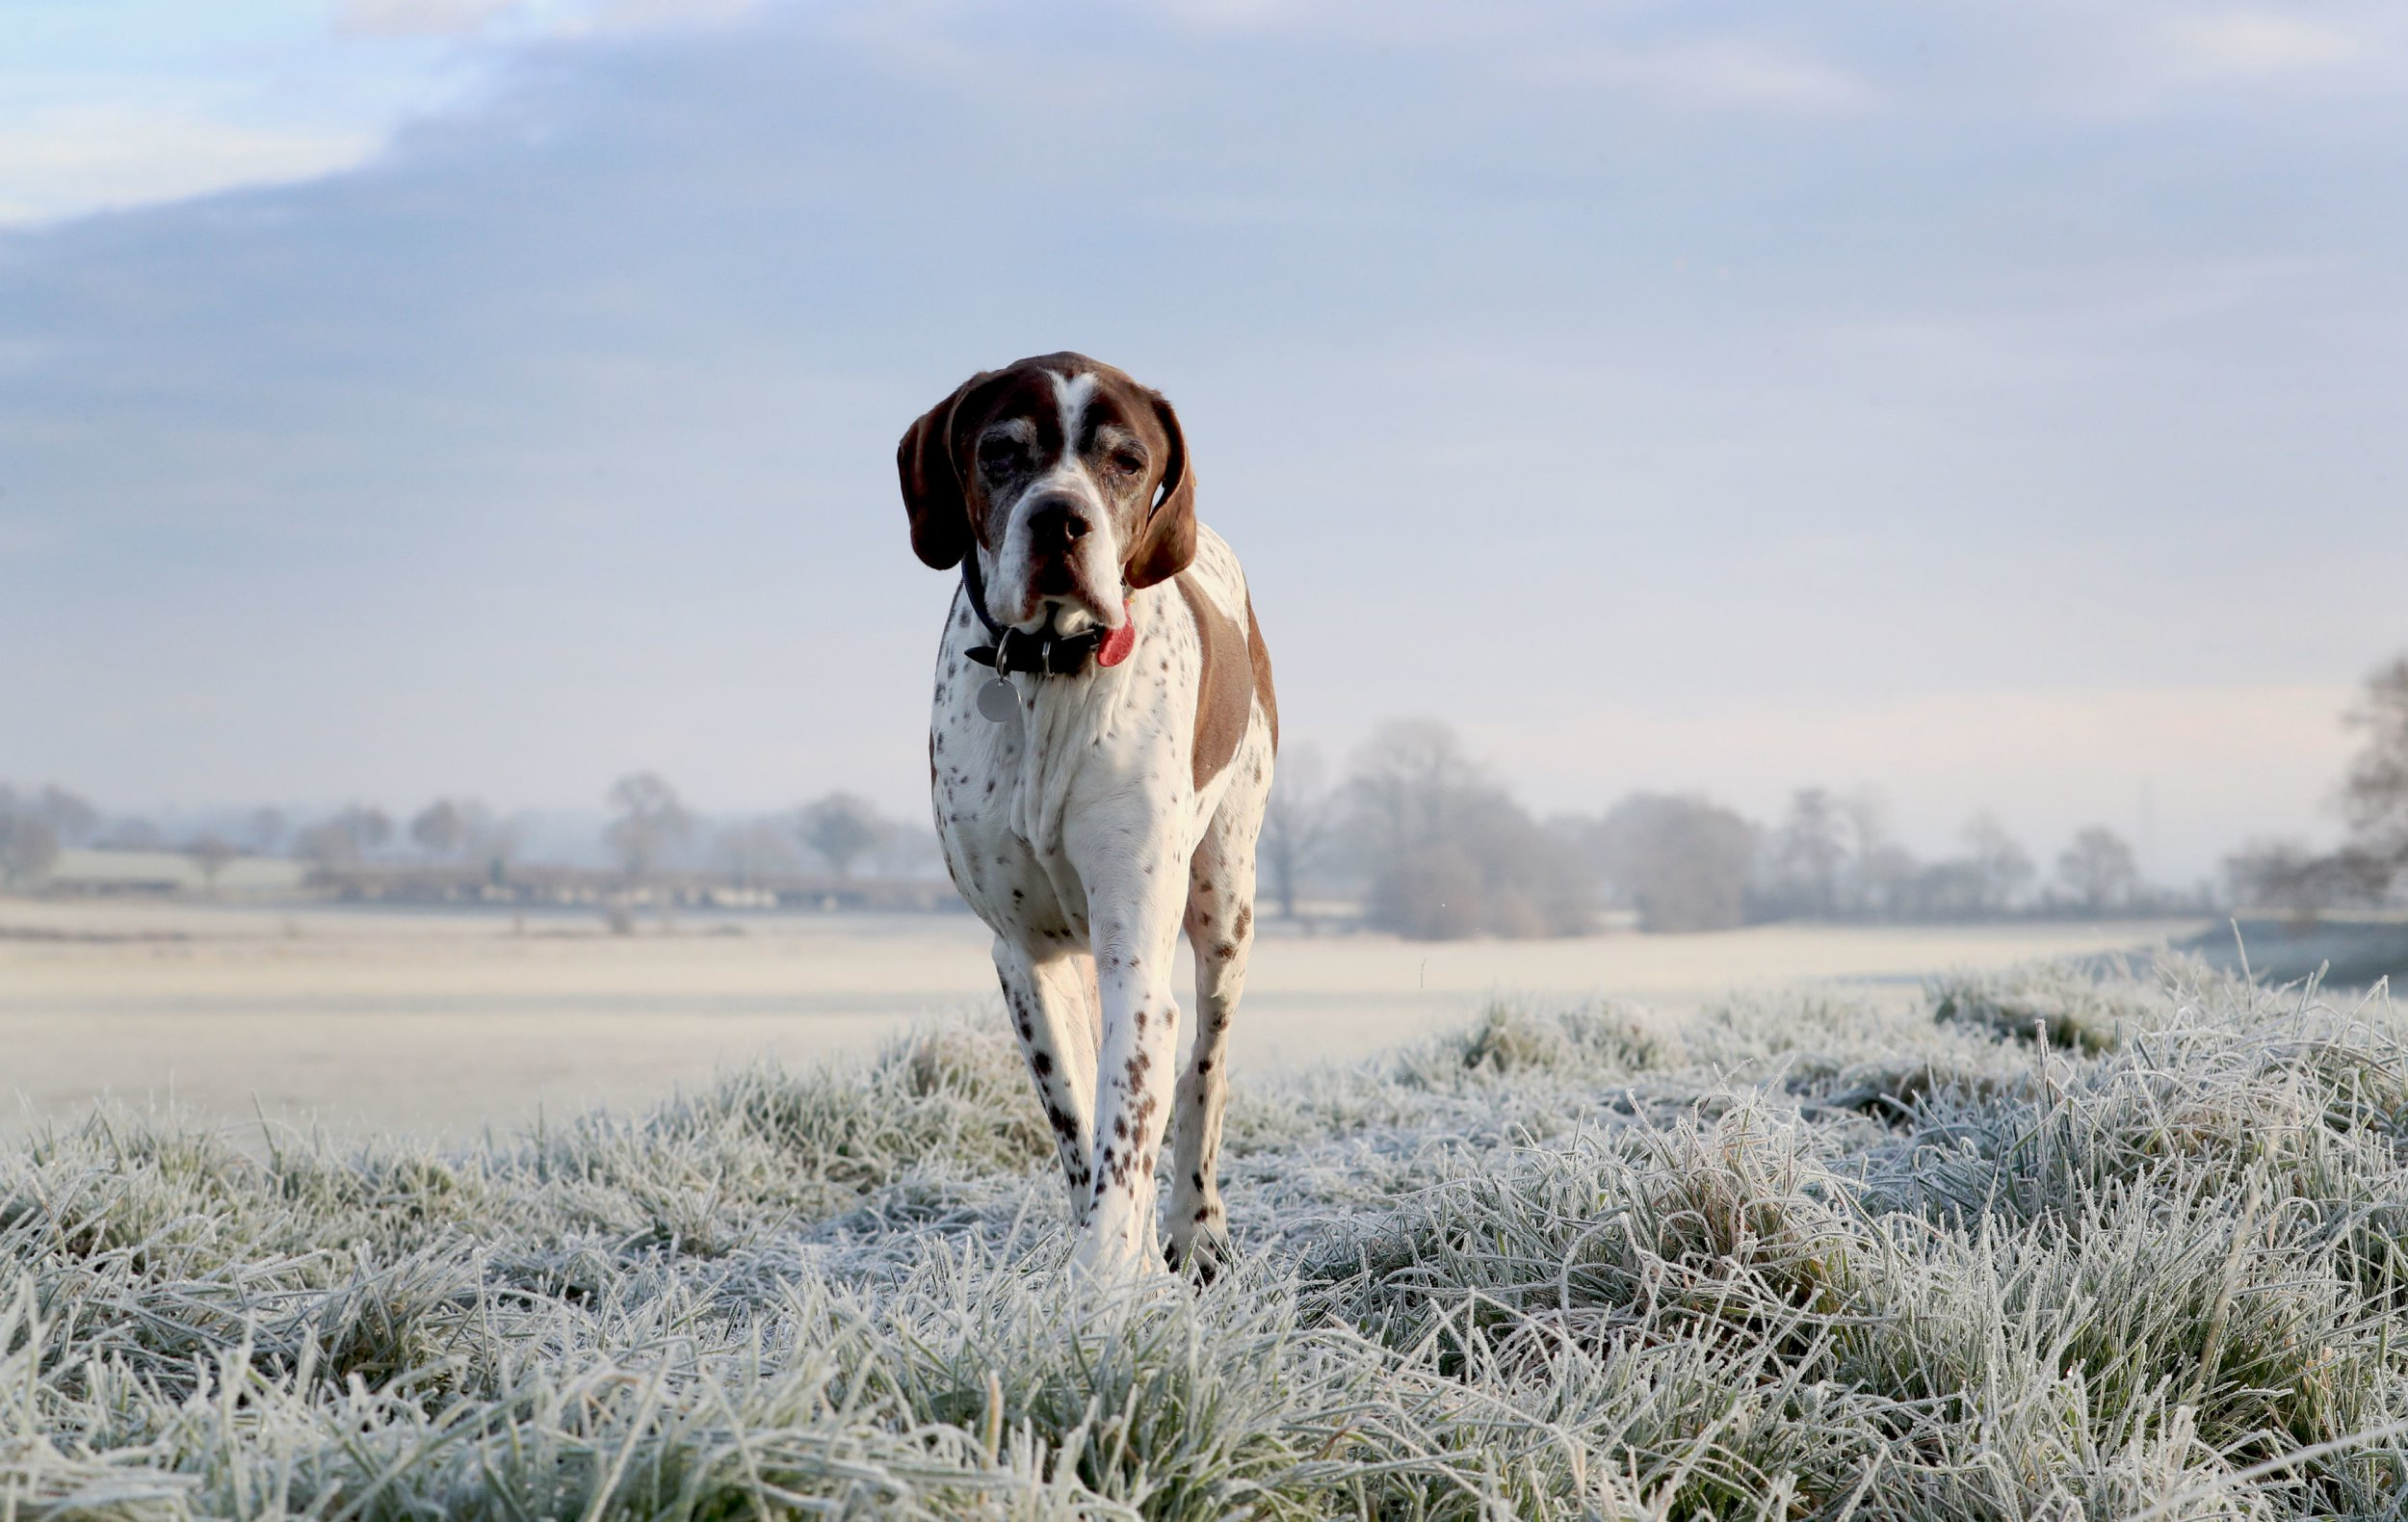 A dog out for a walk on a frosty morning near Bodiam in East Sussex, as the cold weather continues. PRESS ASSOCIATION Photo. Picture date: Thursday January 24, 2019. The Met Office issued its yellow severe ice warning for the south east, central and north of England as well as for Scotland from 6pm on Wednesday to 11am on Thursday. See PA story WEATHER Cold. Photo credit should read: Gareth Fuller/PA Wire